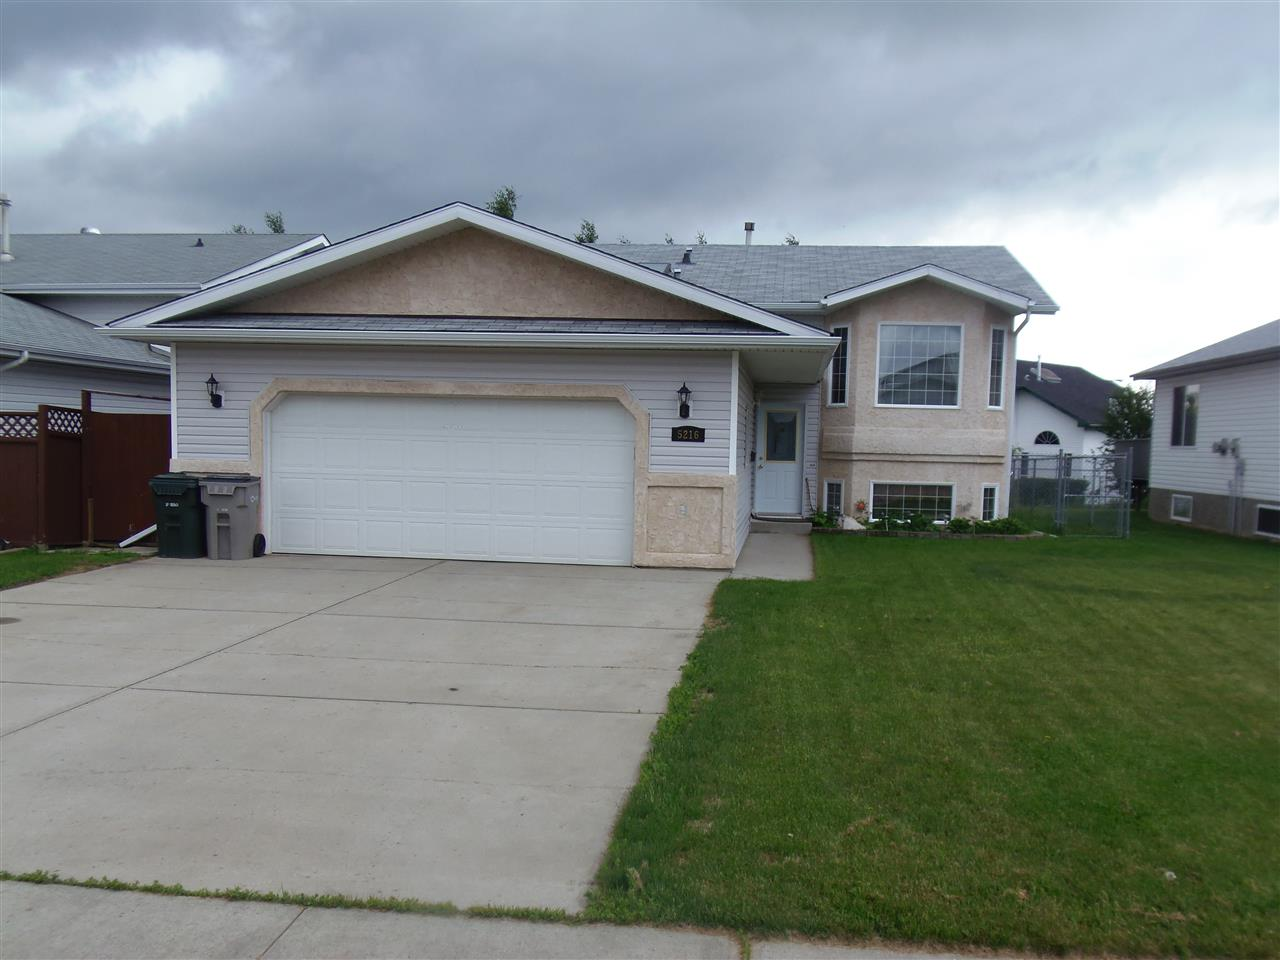 Main Photo: 5216 57 Avenue: Stony Plain House for sale : MLS® # E4069146